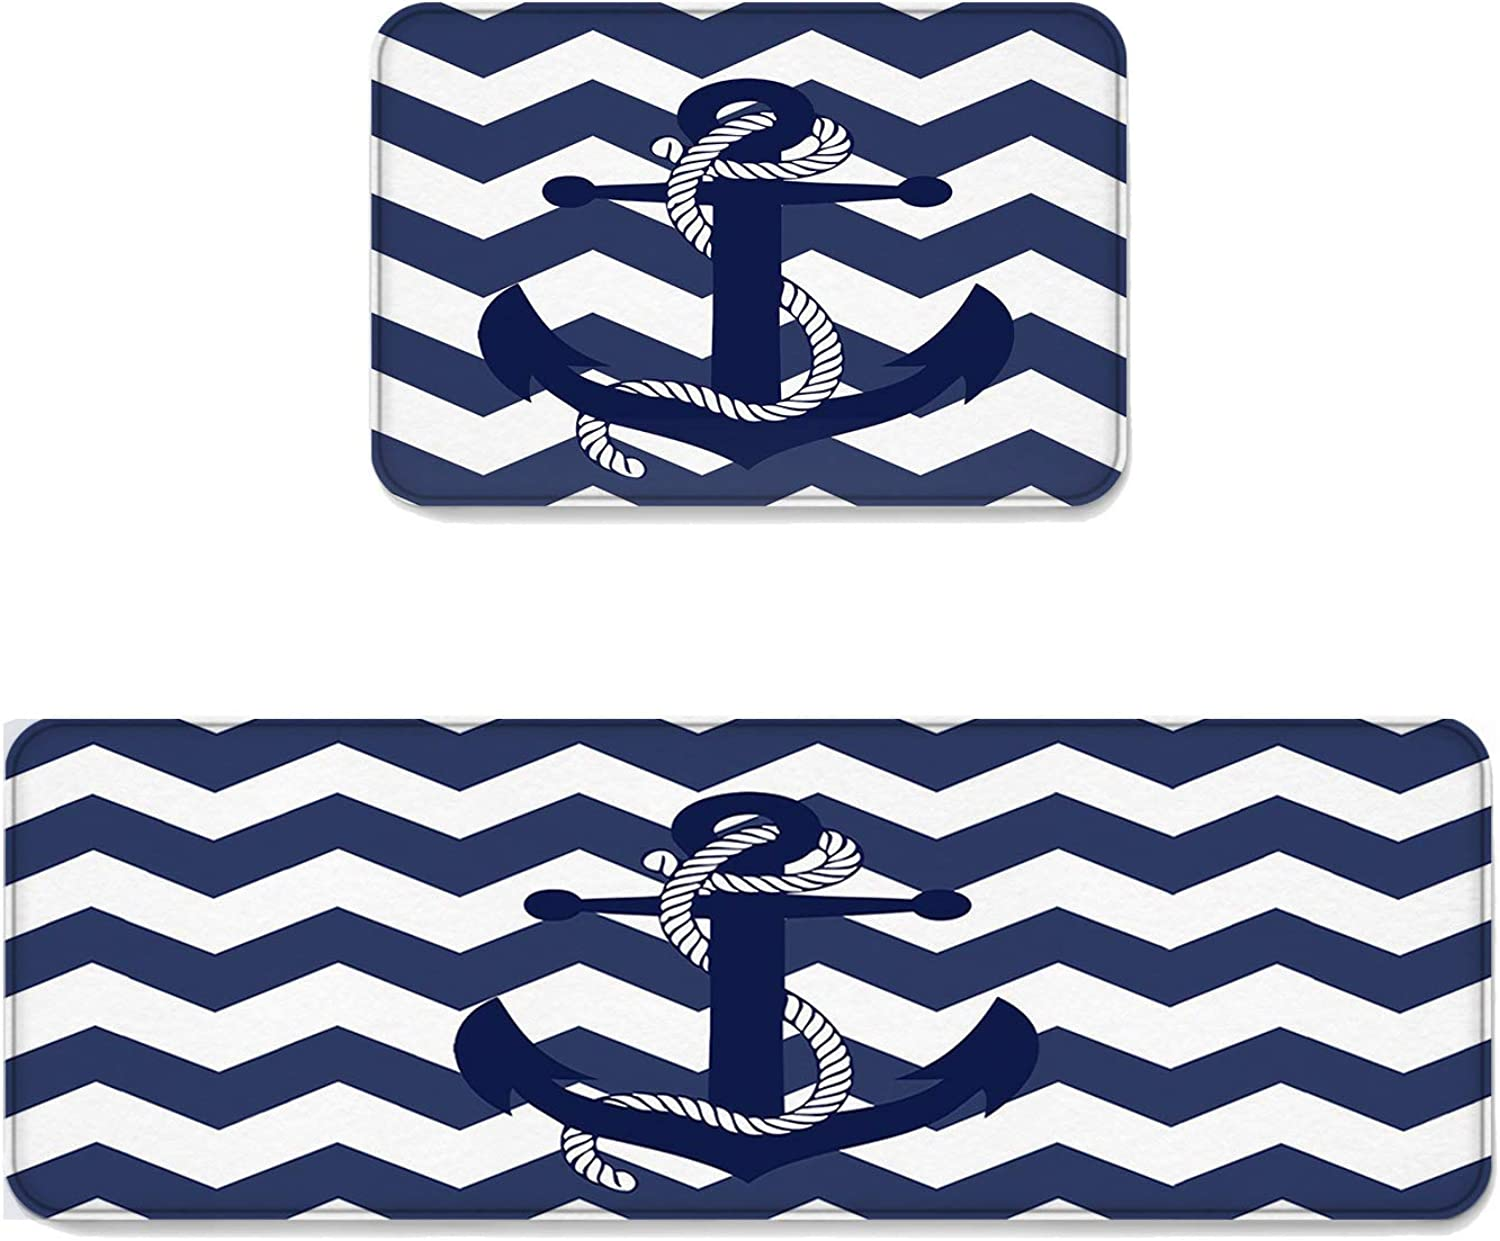 Kitchen Rug Sets 2 Piece Floor Mats Non-Slip Rubber Backing Area Rugs Anchor and Wave Ripple Pattern Doormat Rubber Backing Washable Carpet Inside Door Mat Pad Sets (19.7  x 31.5 +19.7  x 63 )